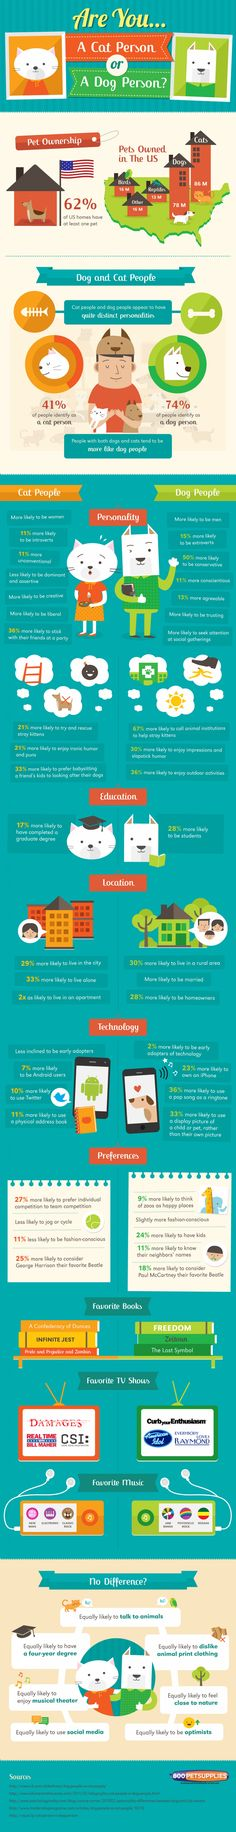 Tweet Tweet Many of us have pets in our homes. Some people prefer dogs and some like cats more. Have you ever wondered what the type of pet you have says about you? Did you know that cat people are more likely to be introverts while dog people are more likely to be trusting? This …